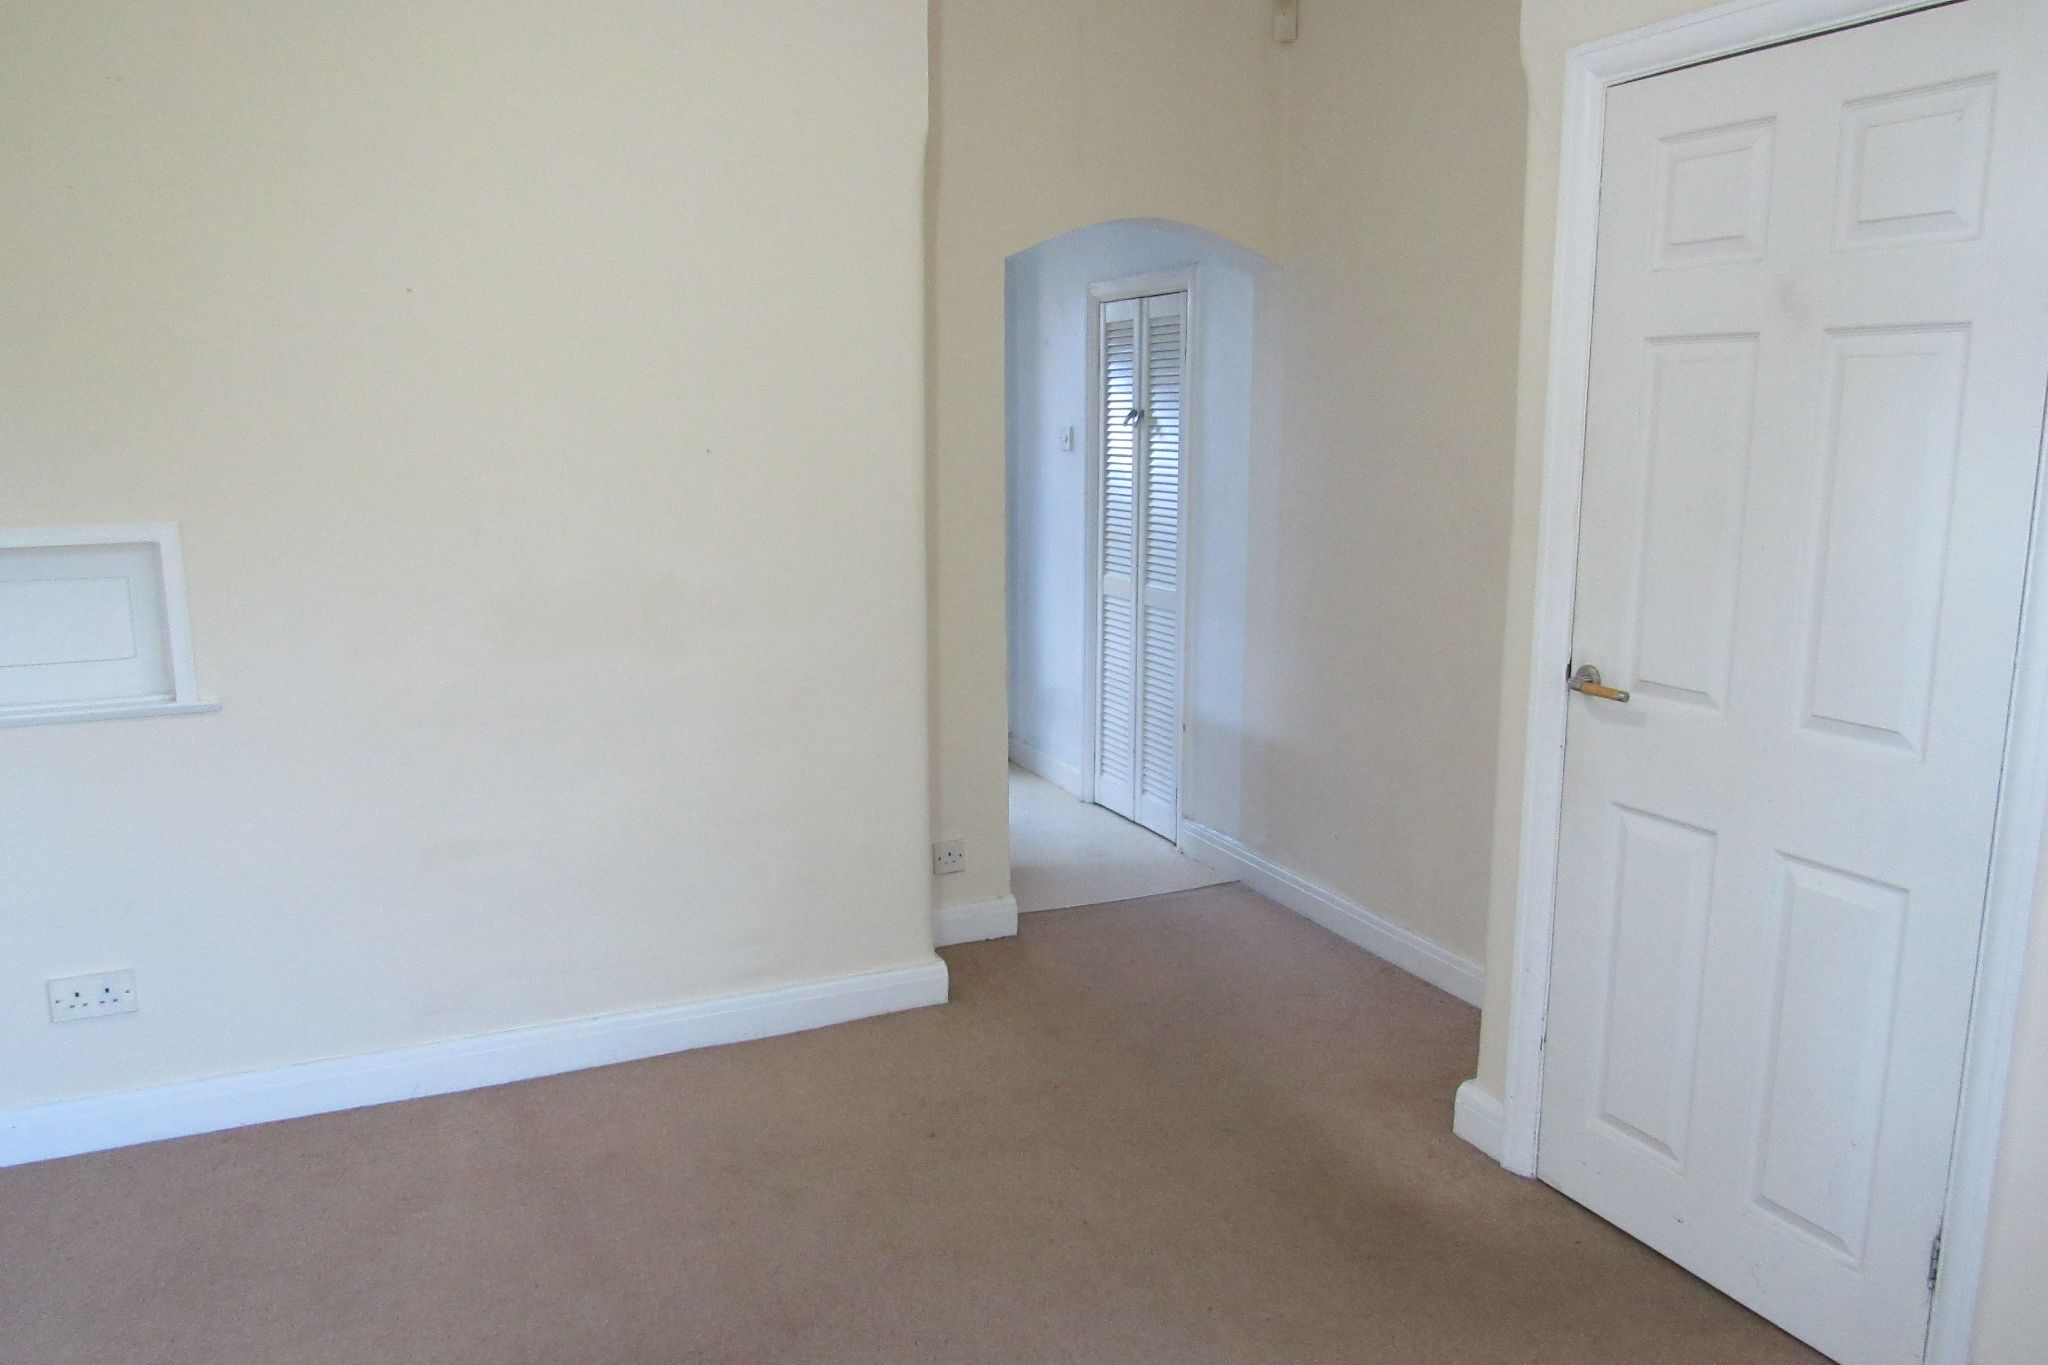 3 bedroom semi-detached house For Sale in Manchester - Photograph 12.